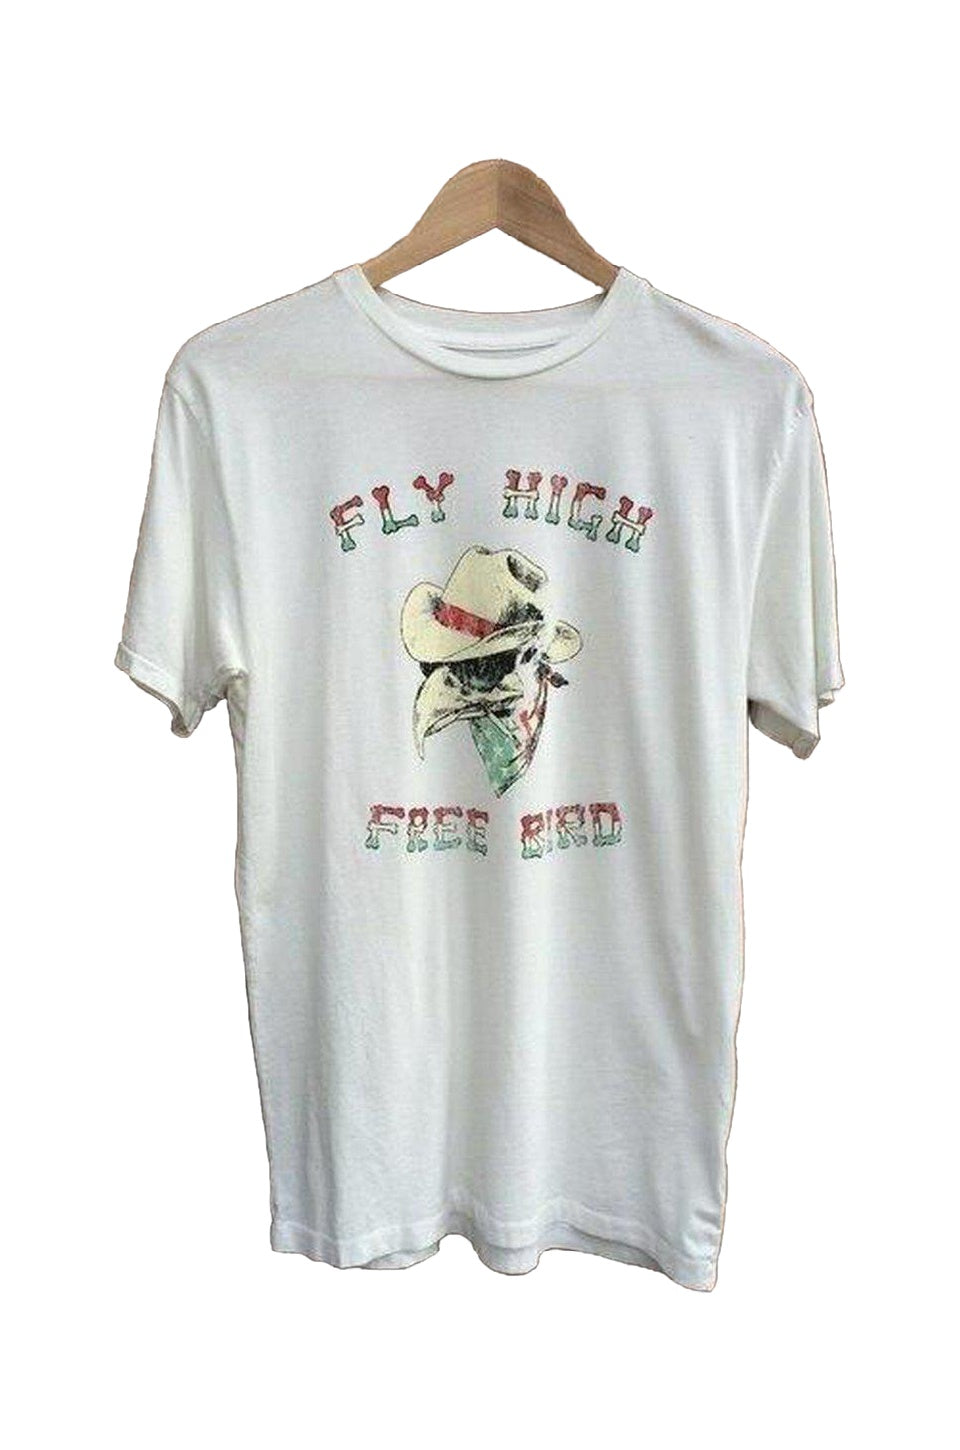 Bandit Brand Cowboy Fly High Free Bird T-Shirt In White